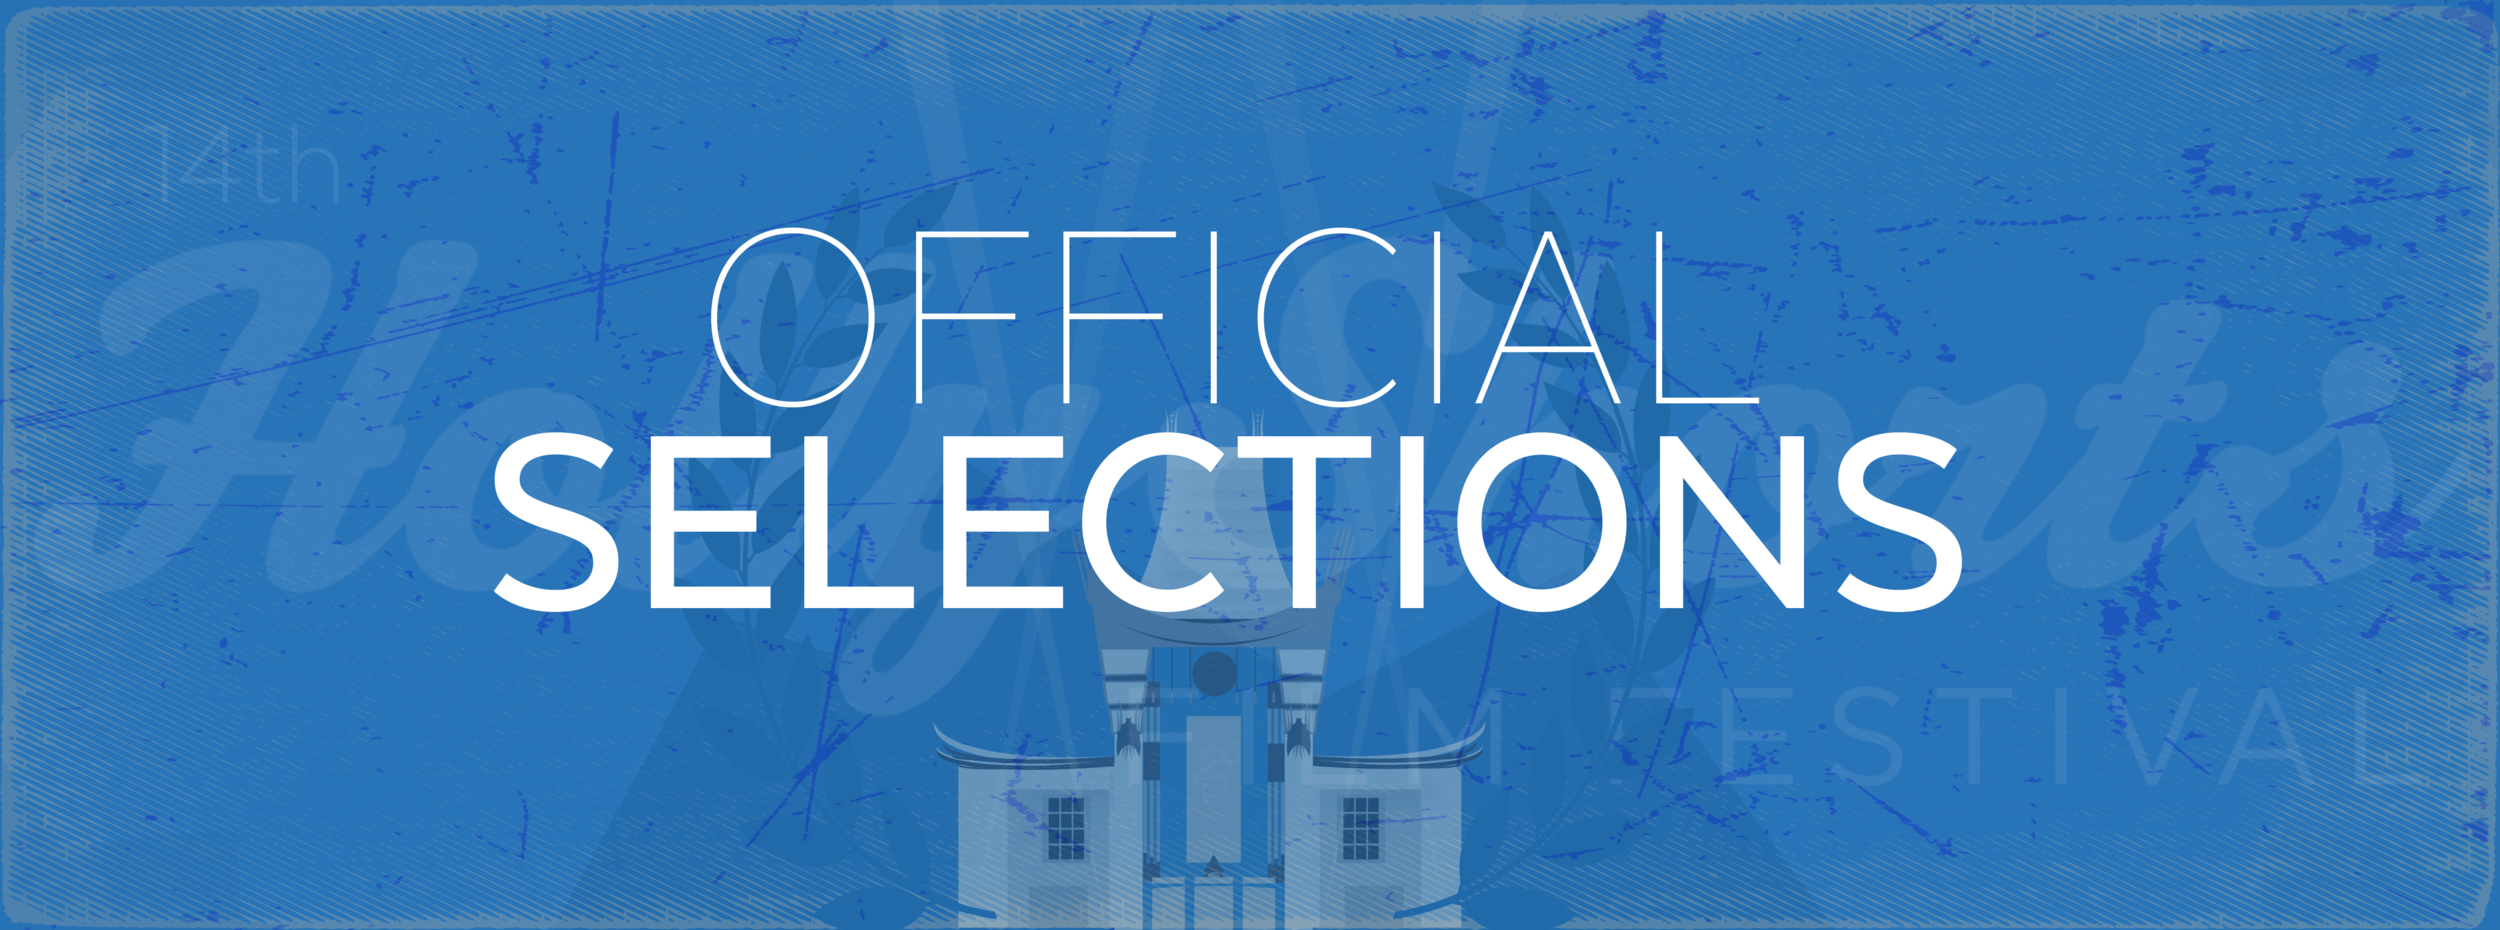 Official Selections Banner.png